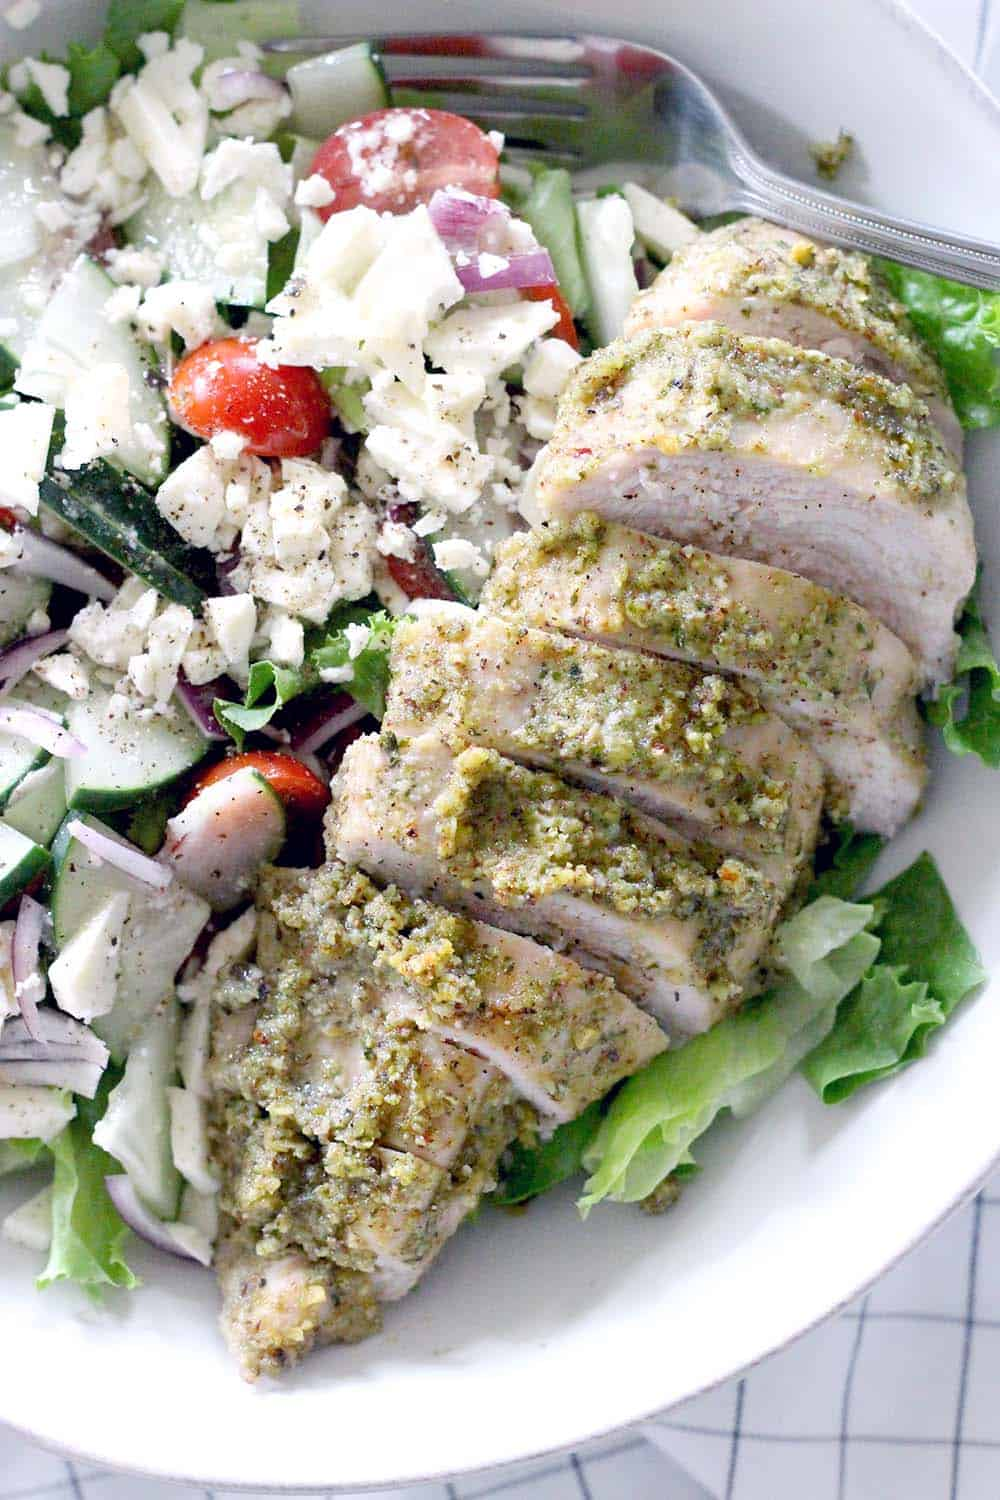 Pesto Baked Chicken Breasts: TWO INGREDIENTS is all you need for this healthy, paleo, low carb, lean protein to enjoy as a main course or to add to salads, pizza, sandwiches, etc.